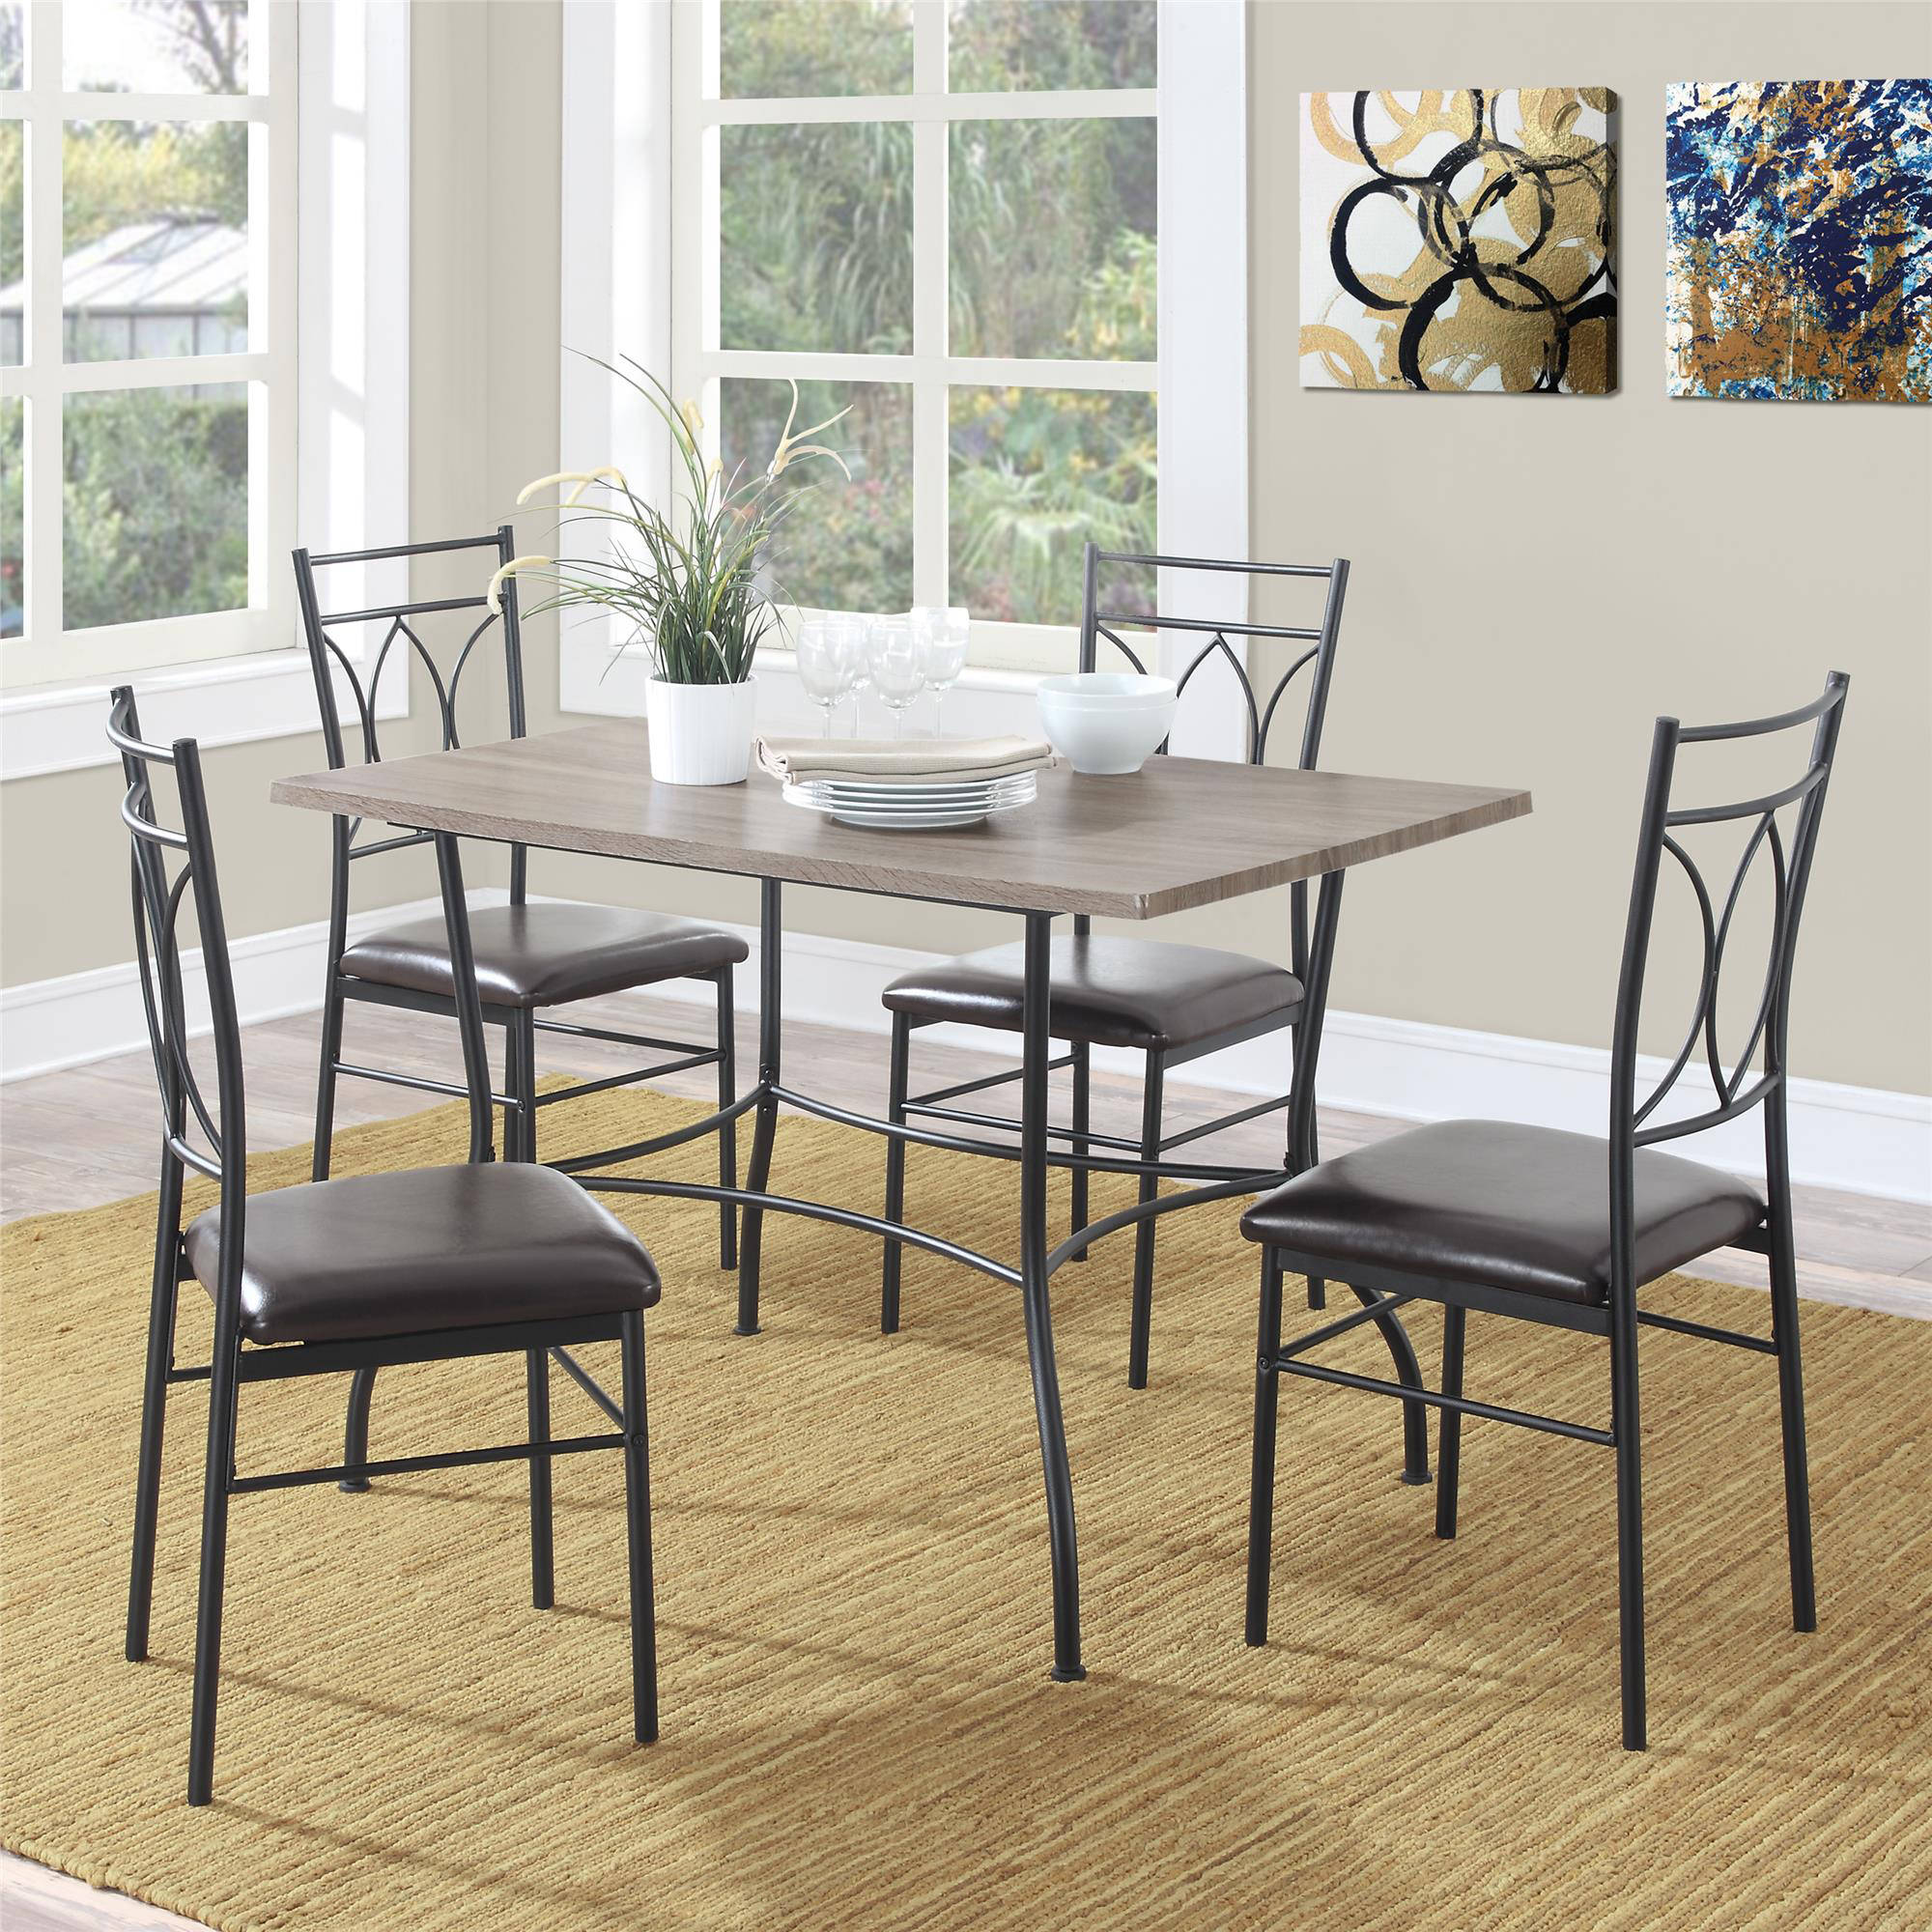 Charming Dorel Living Shelby 5 Piece Rustic Wood And Metal Dining Set   Walmart.com